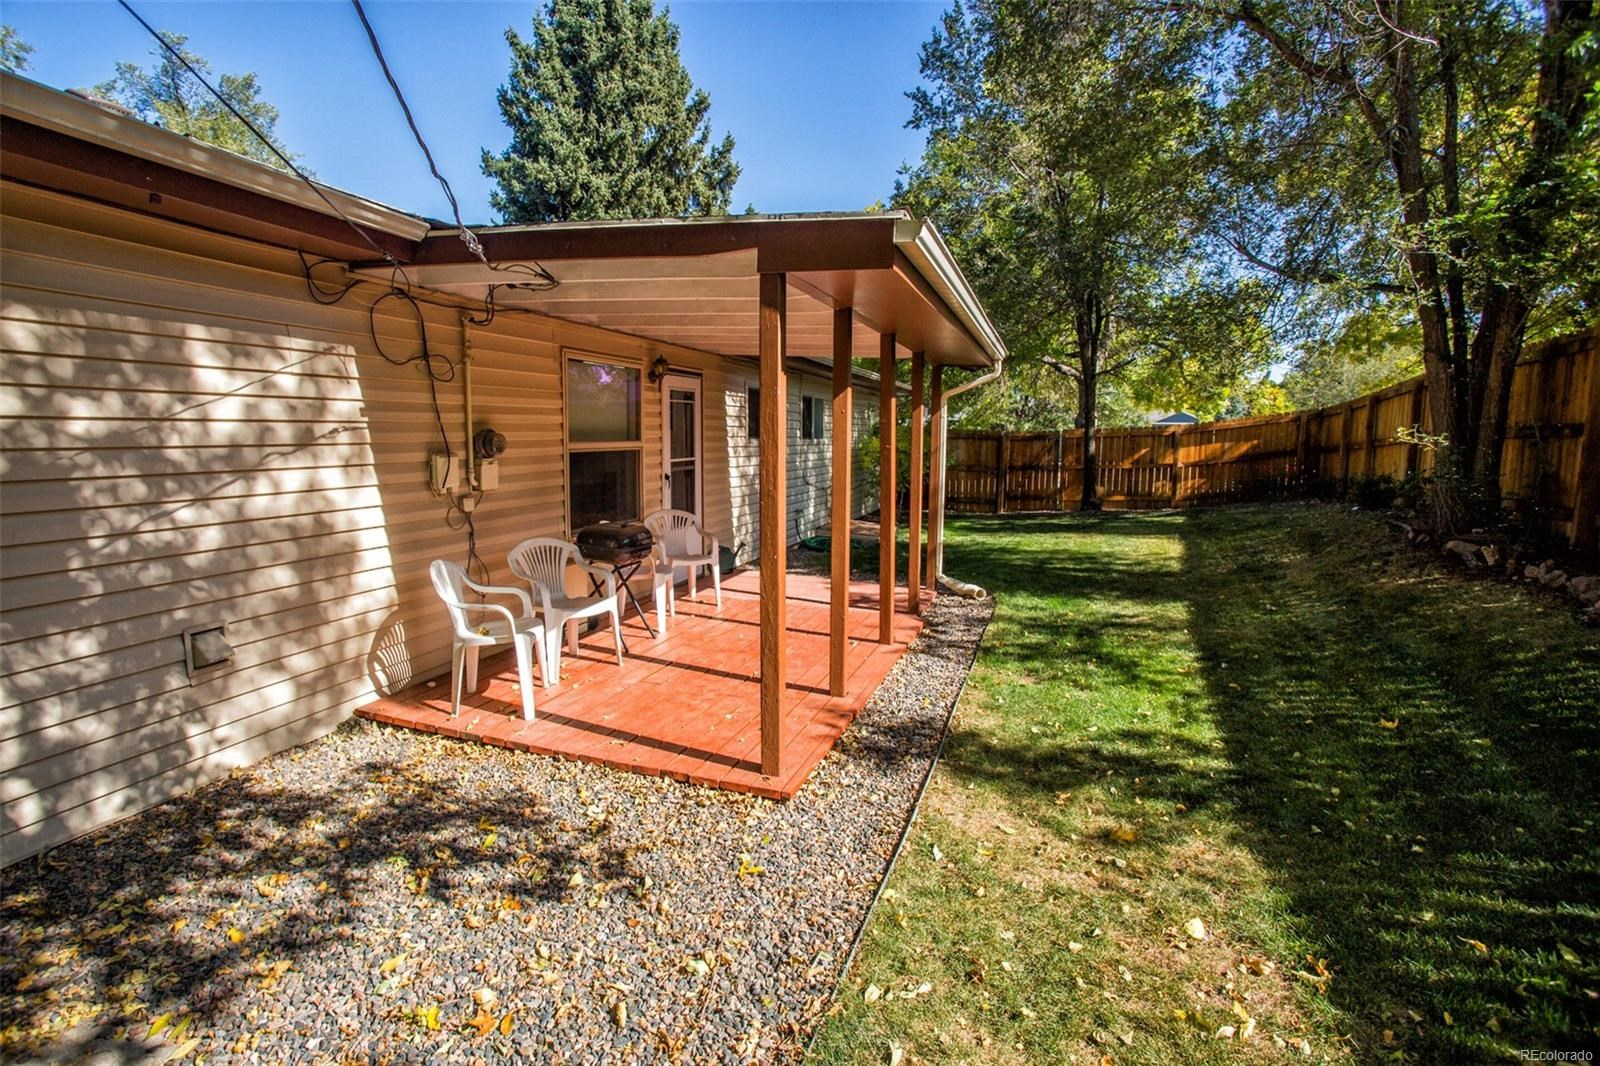 MLS# 1591889 - 25 - 10120 W 8th Place, Lakewood, CO 80215